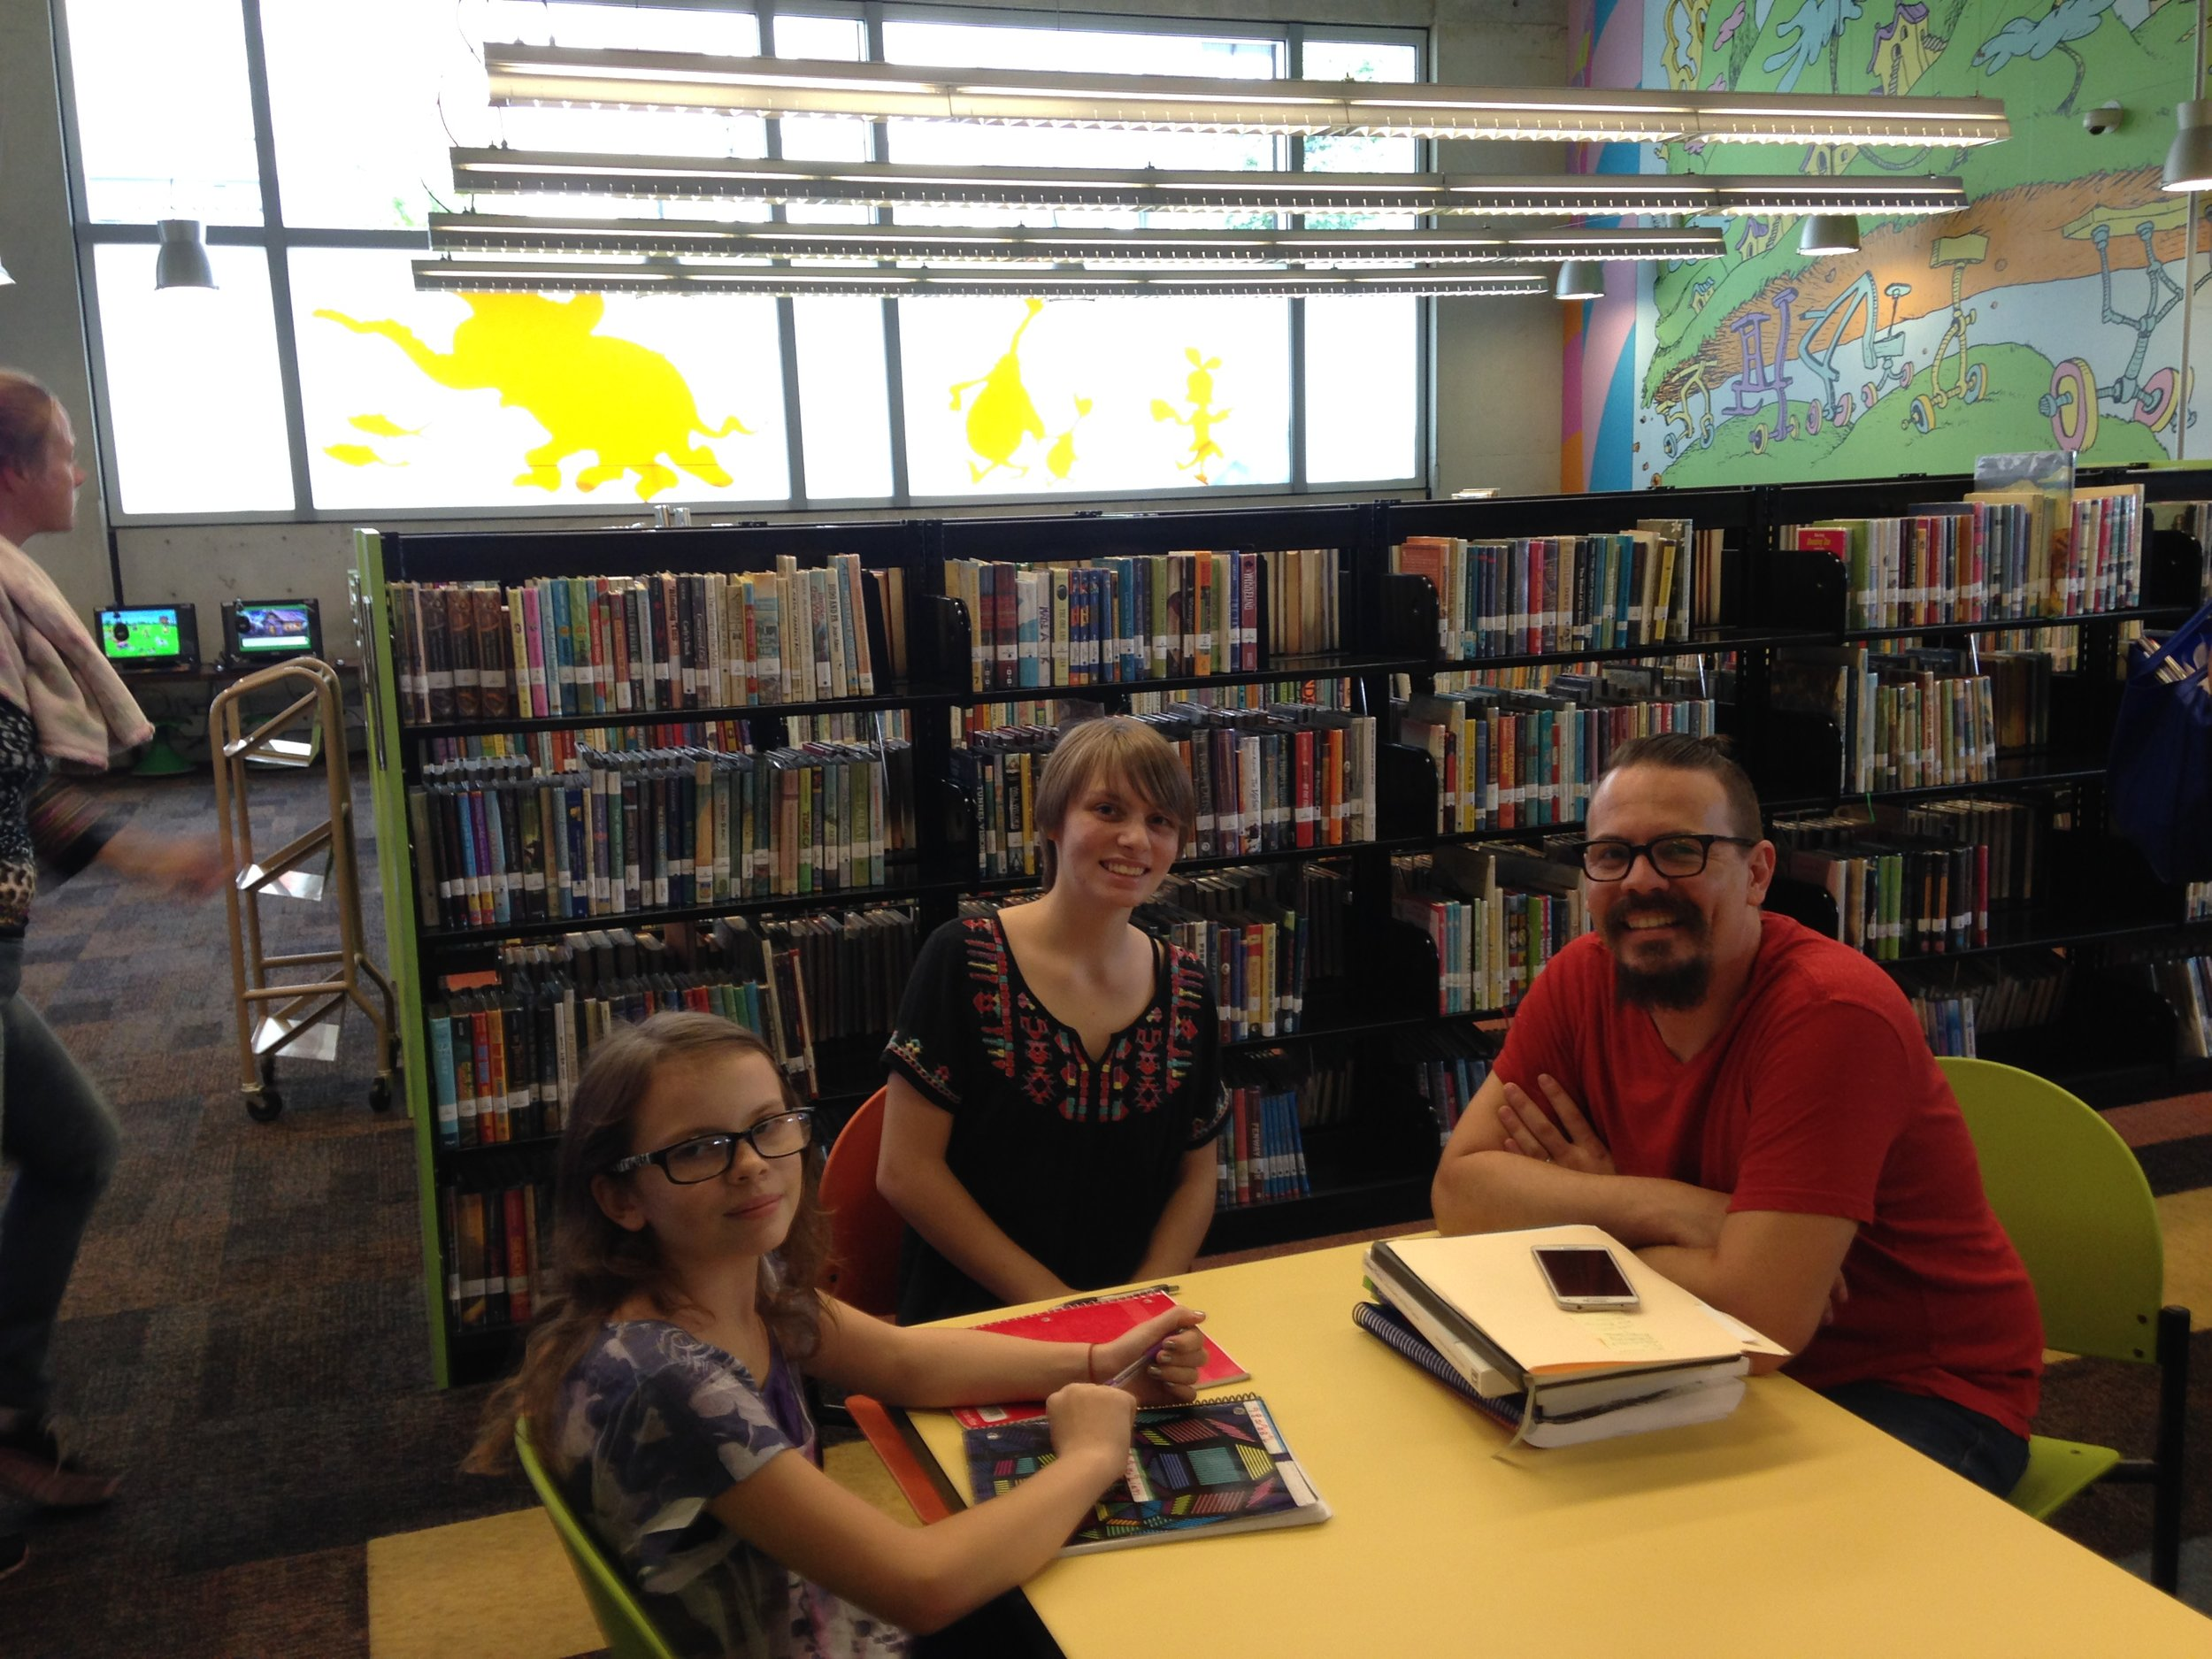 Isabel, Fabienne, and Ethan Sparks touring the Central Branch of the San Diego Public Library